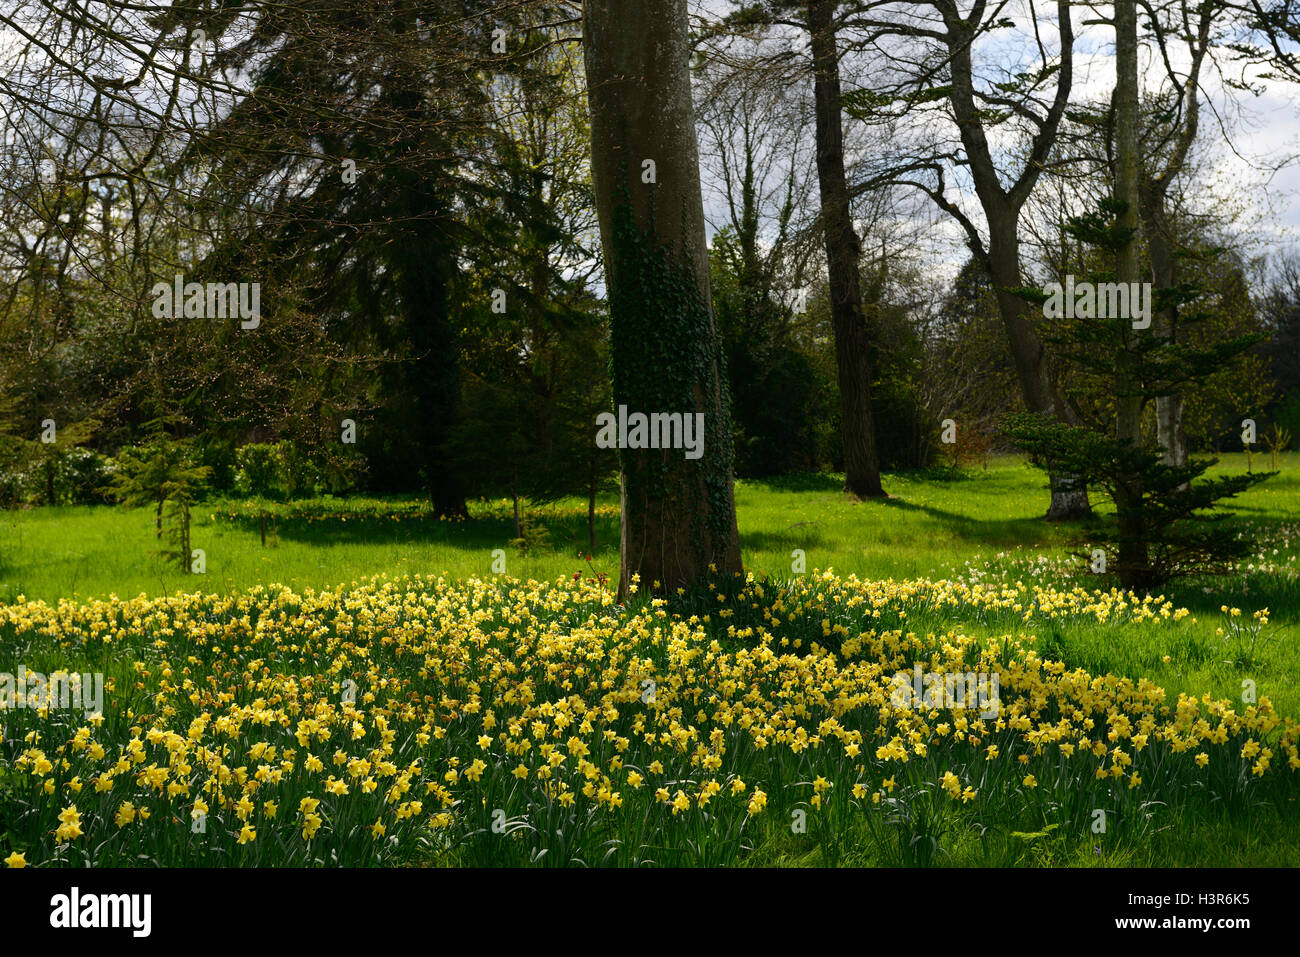 yellow, daffodil, daffodils, carpet, flowers, flowering, flower, spring, lawn, bed, underplanting, underplanted, - Stock Image